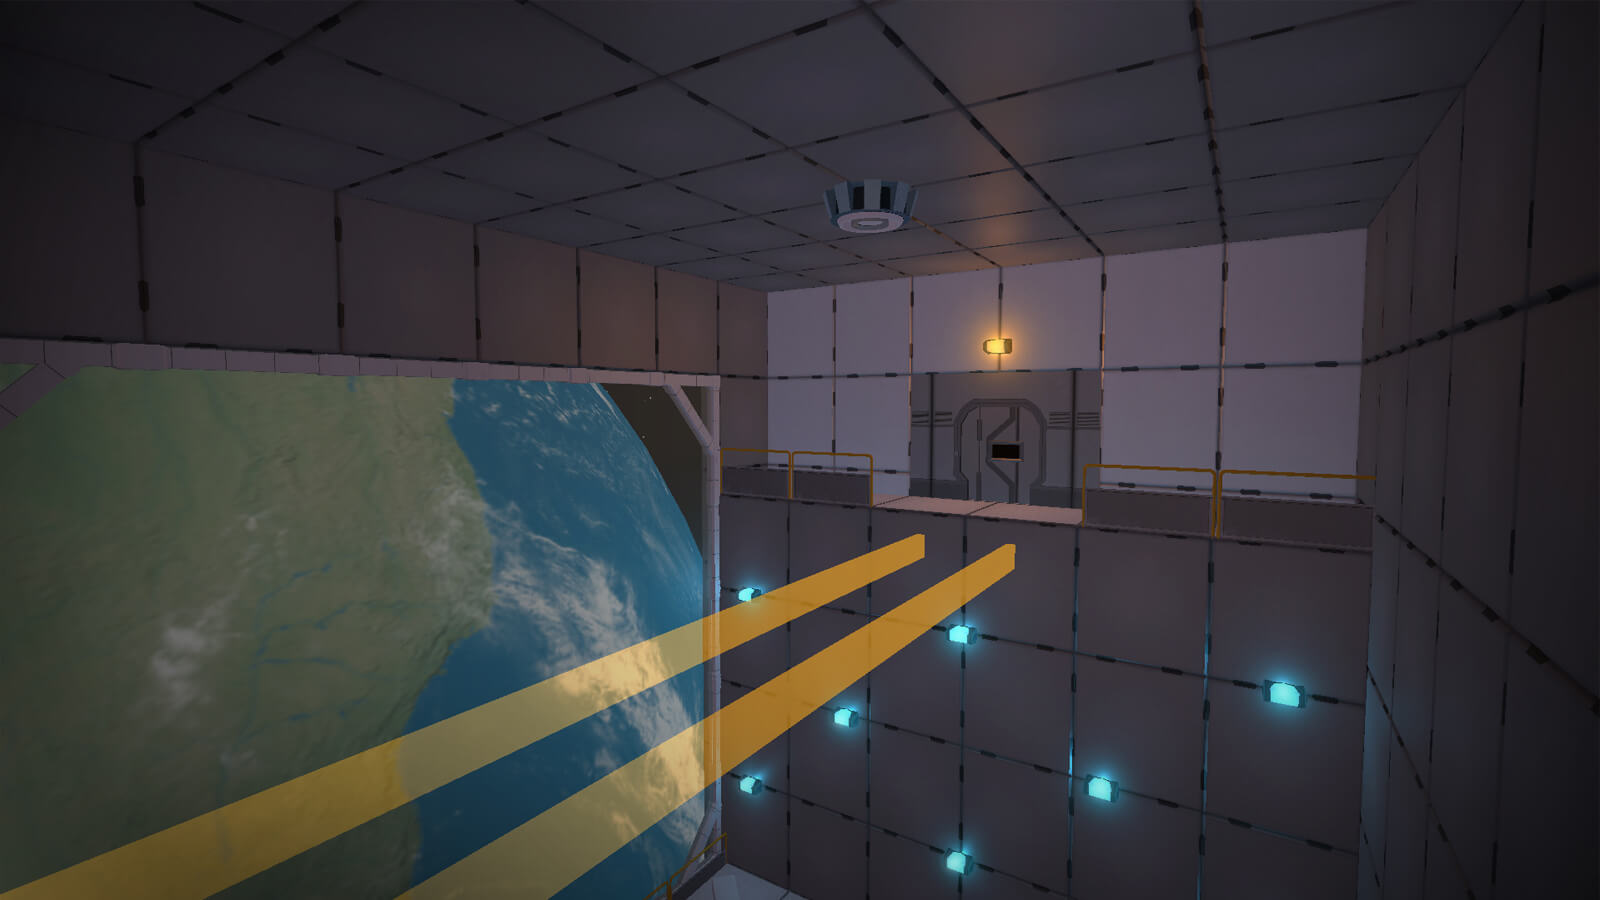 A room with a large window showing the planet below. Two yellow rays reach an elevated platform and door.